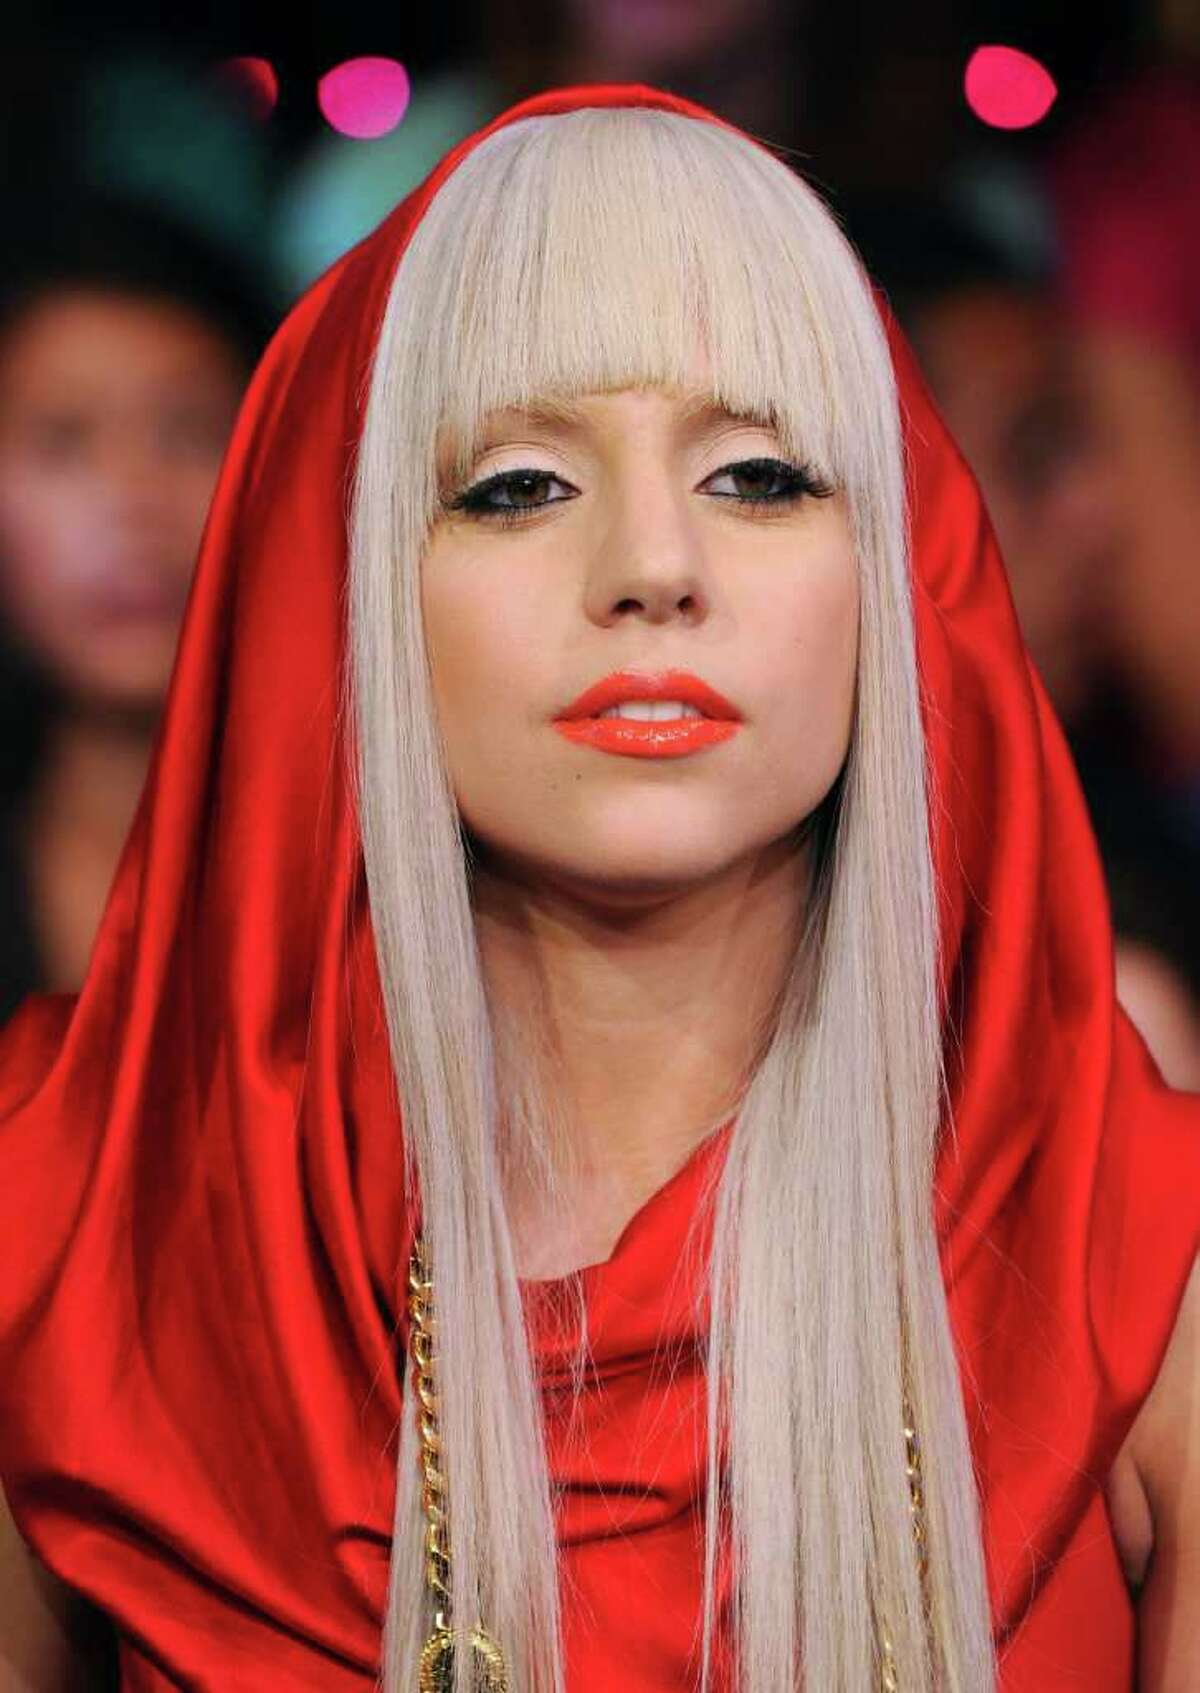 """FILE - In this Aug. 12, 2008 photo Lady Gaga makes an appearance at MTV Studio's in Times Square for MTV's """"Total Request Live"""" show in New York. Nearly a century after a ?secret court? at Harvard University expelled seven students for being gay _ or being perceived as gay _ students and faculty members are urging administrators to award them posthumous degrees. A group of students and faculty members are planning a rally at the university Wednesday during a campus visit by Lady Gaga, who will be at Harvard to launch her Born This Way anti-bullying foundation. (AP Photo/Peter Kramer, File)"""